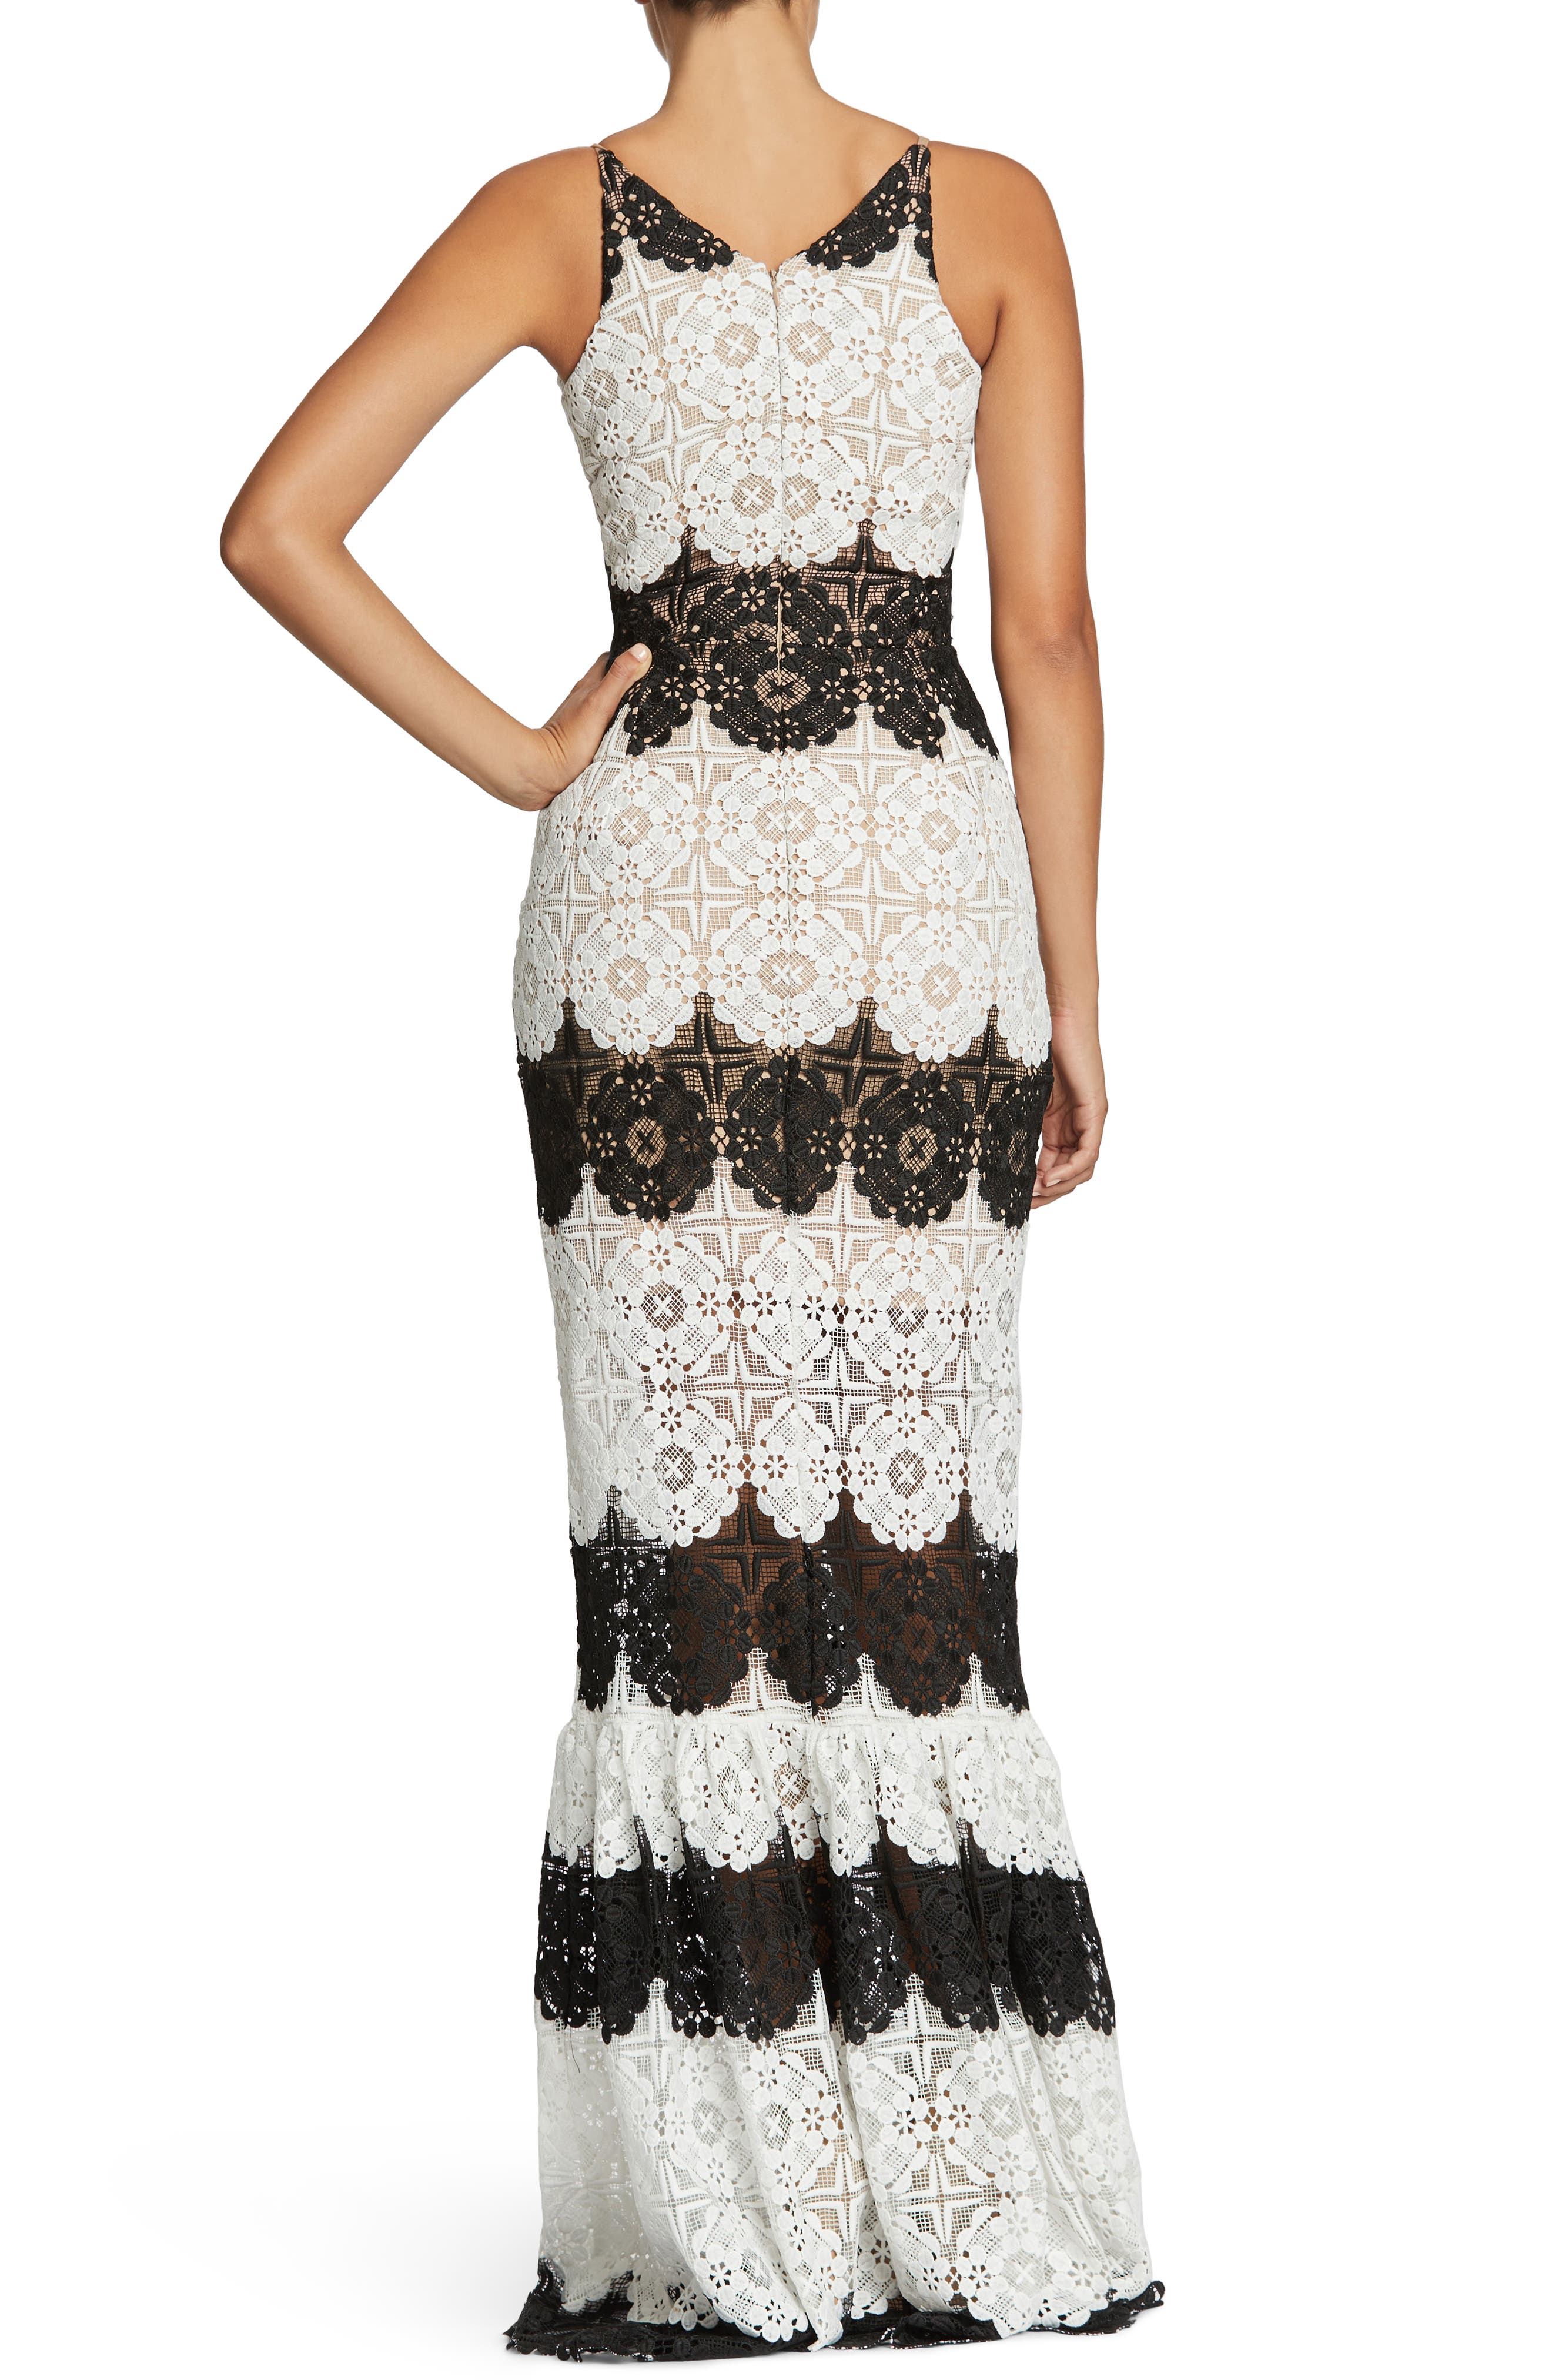 Candace Crochet Mermaid Gown,                             Alternate thumbnail 2, color,                             White/ Black